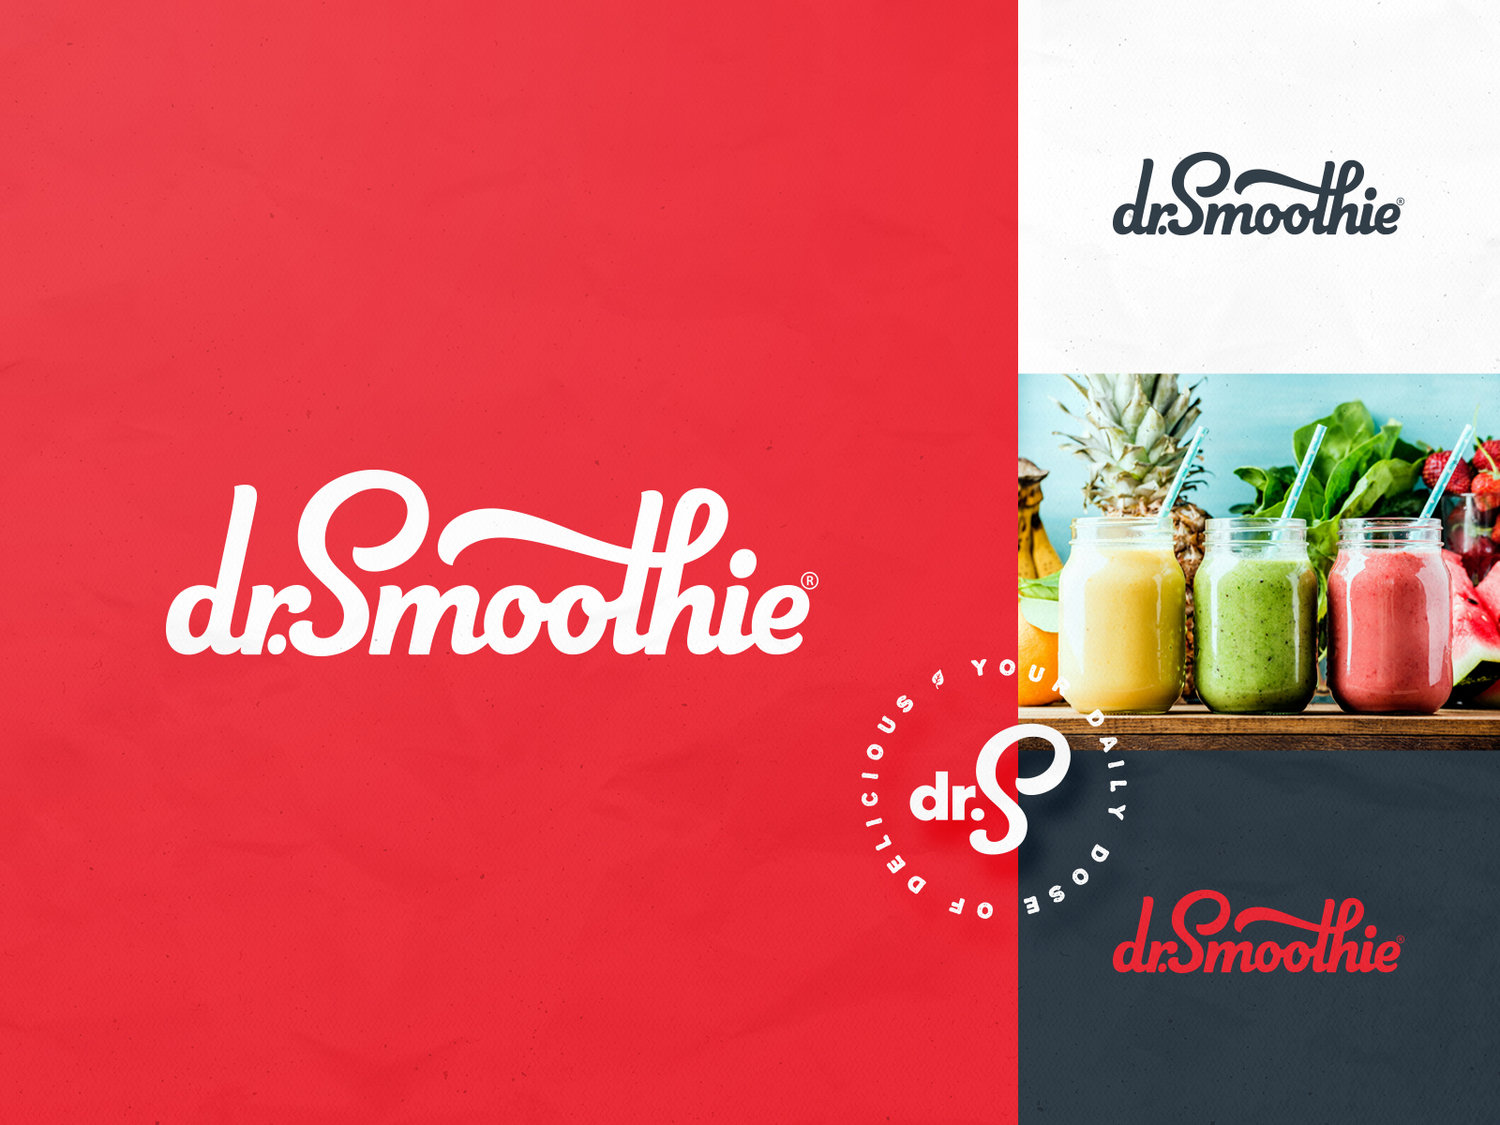 Dr. Smoothie Final Logo.jpg